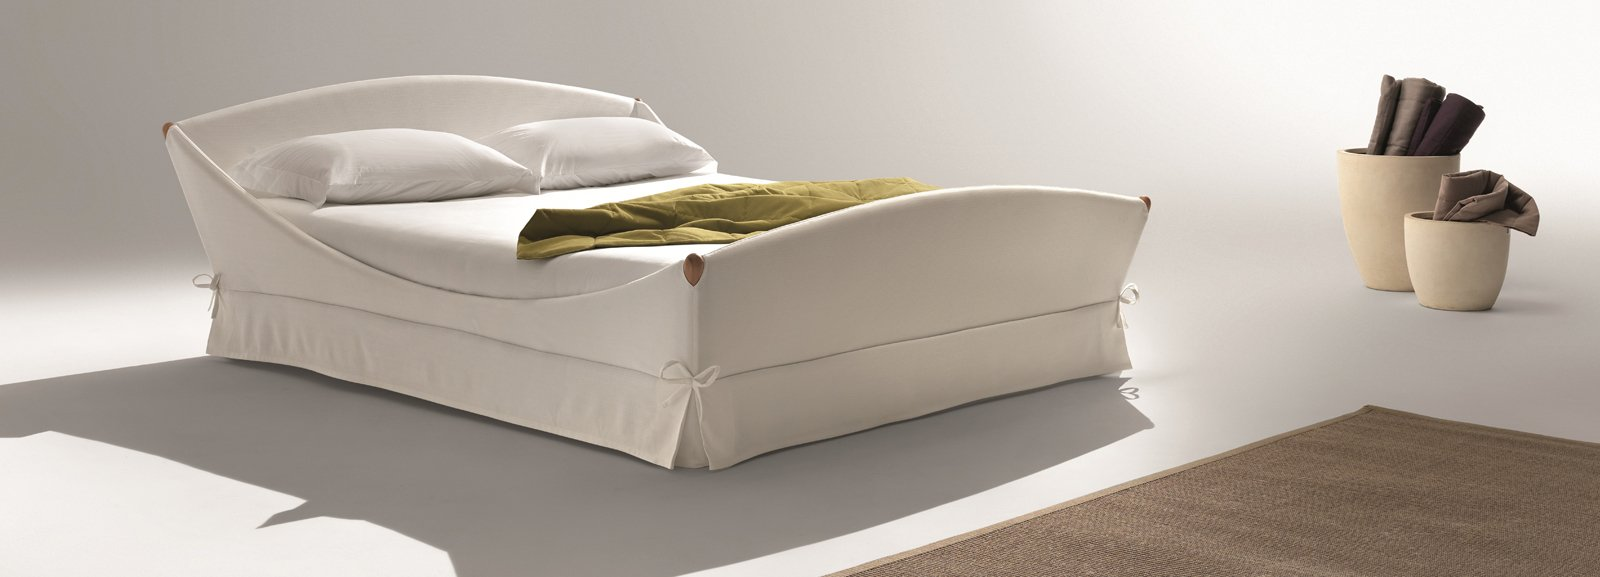 Best I Segreti Della Camera Da Letto Contemporary - Modern Design ...